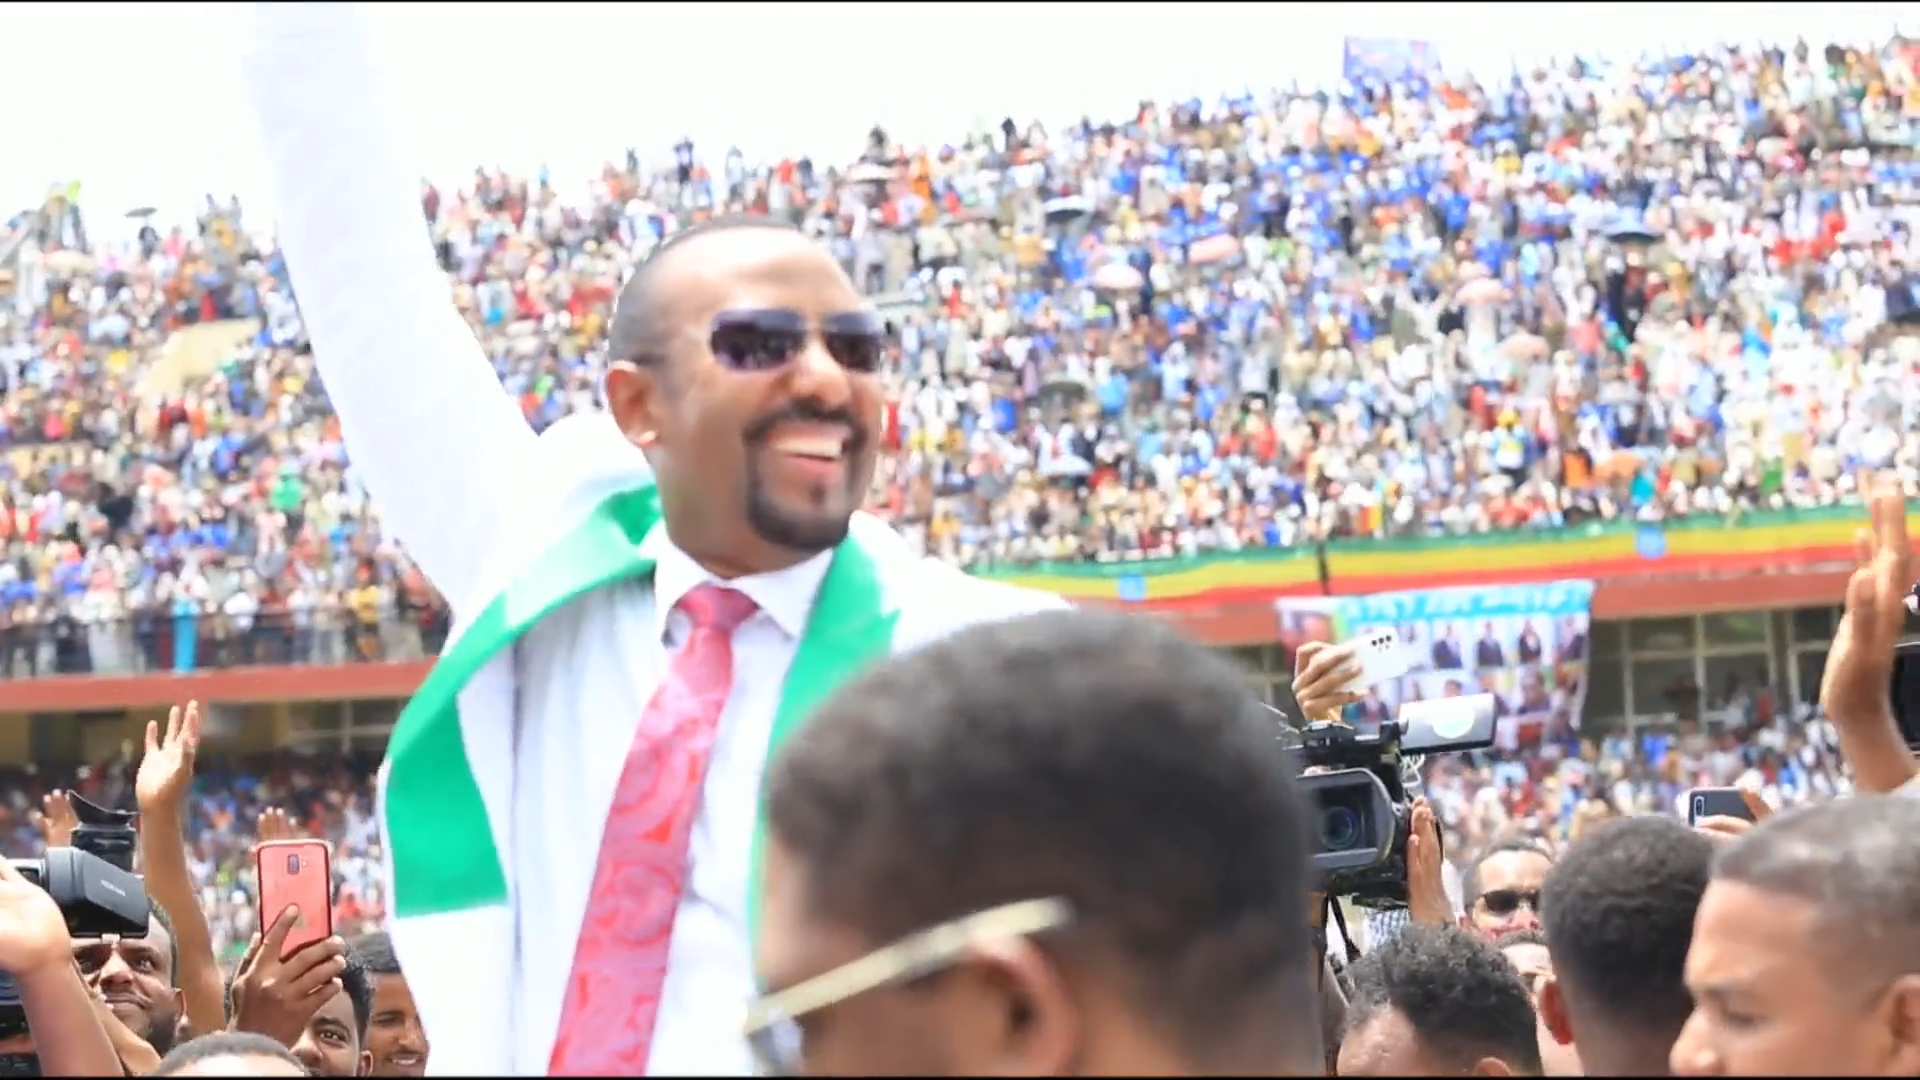 Ethiopians head to the polls following months of violence in Tigray region - channel 4